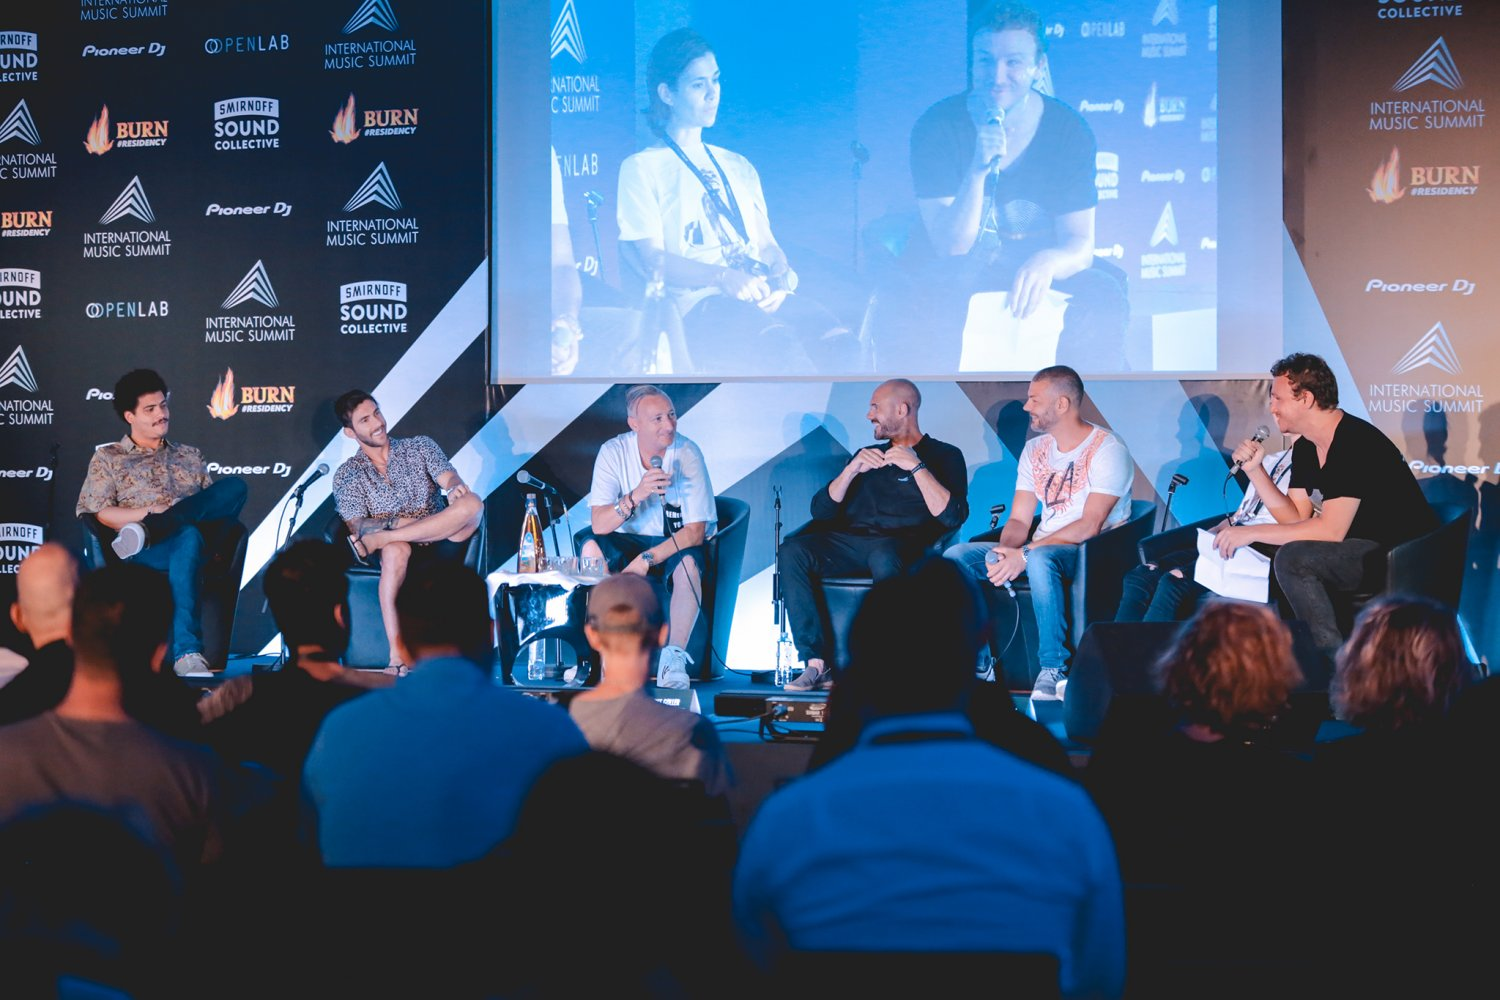 IMS searches for industry visionary speaker | Ibiza Spotlight